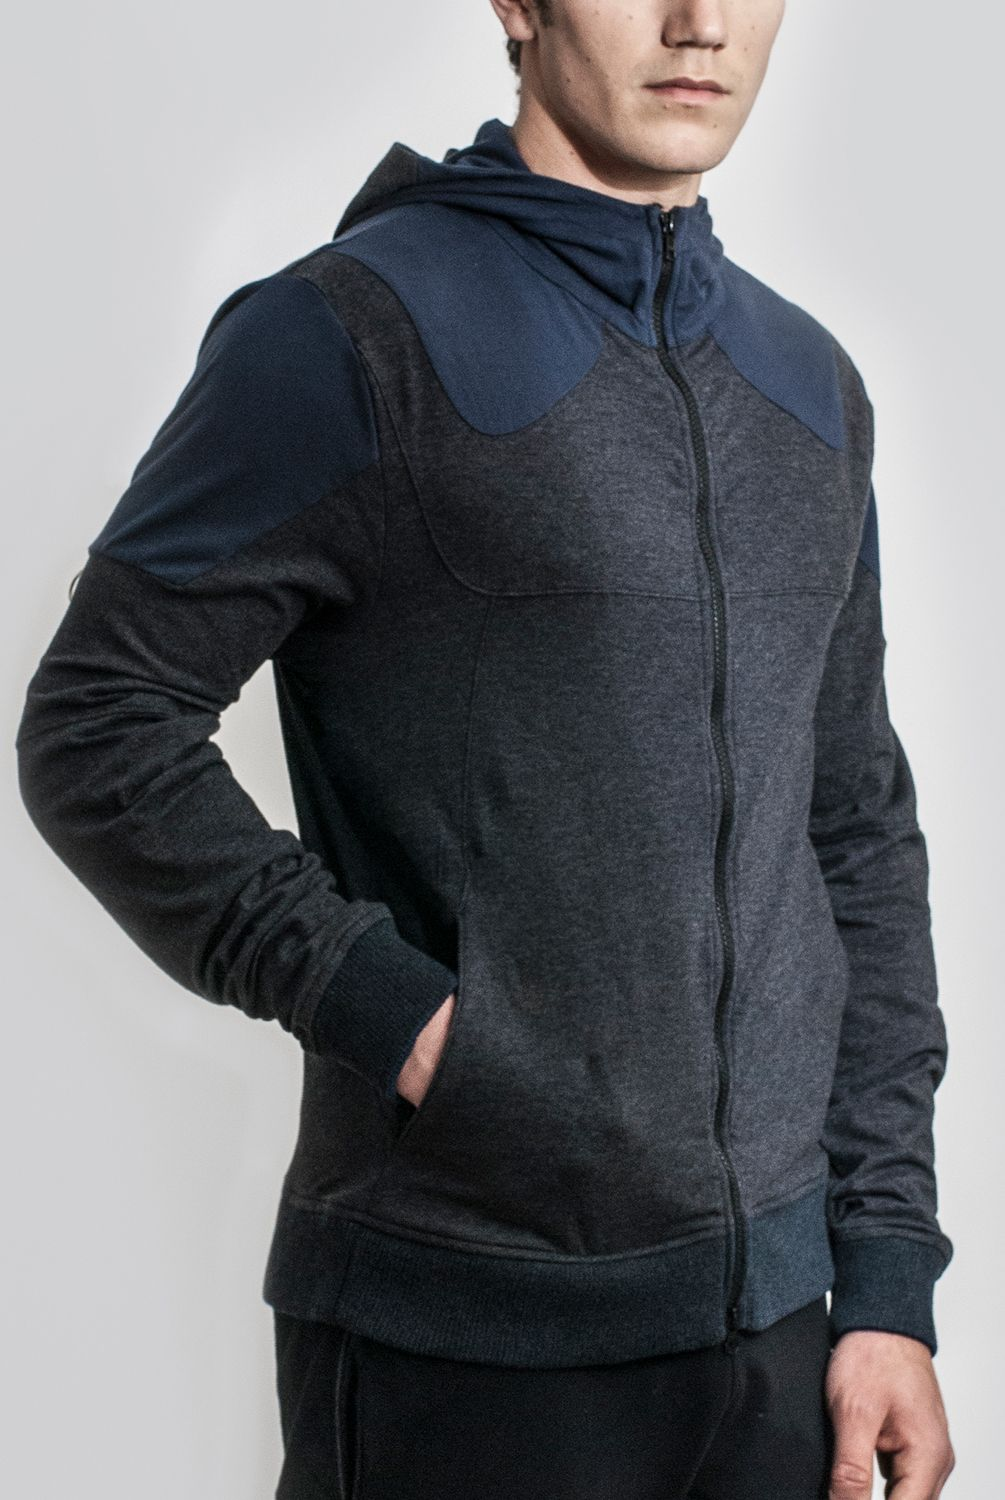 Evolve Fit Wear is super excited to introduce Number Lab a new brand in Men's Active wear. Number lab is top quality work out clothes that provide fantastic function and great design. Check out the whole line up of great Number Lab products at http://evolvefitwear.com